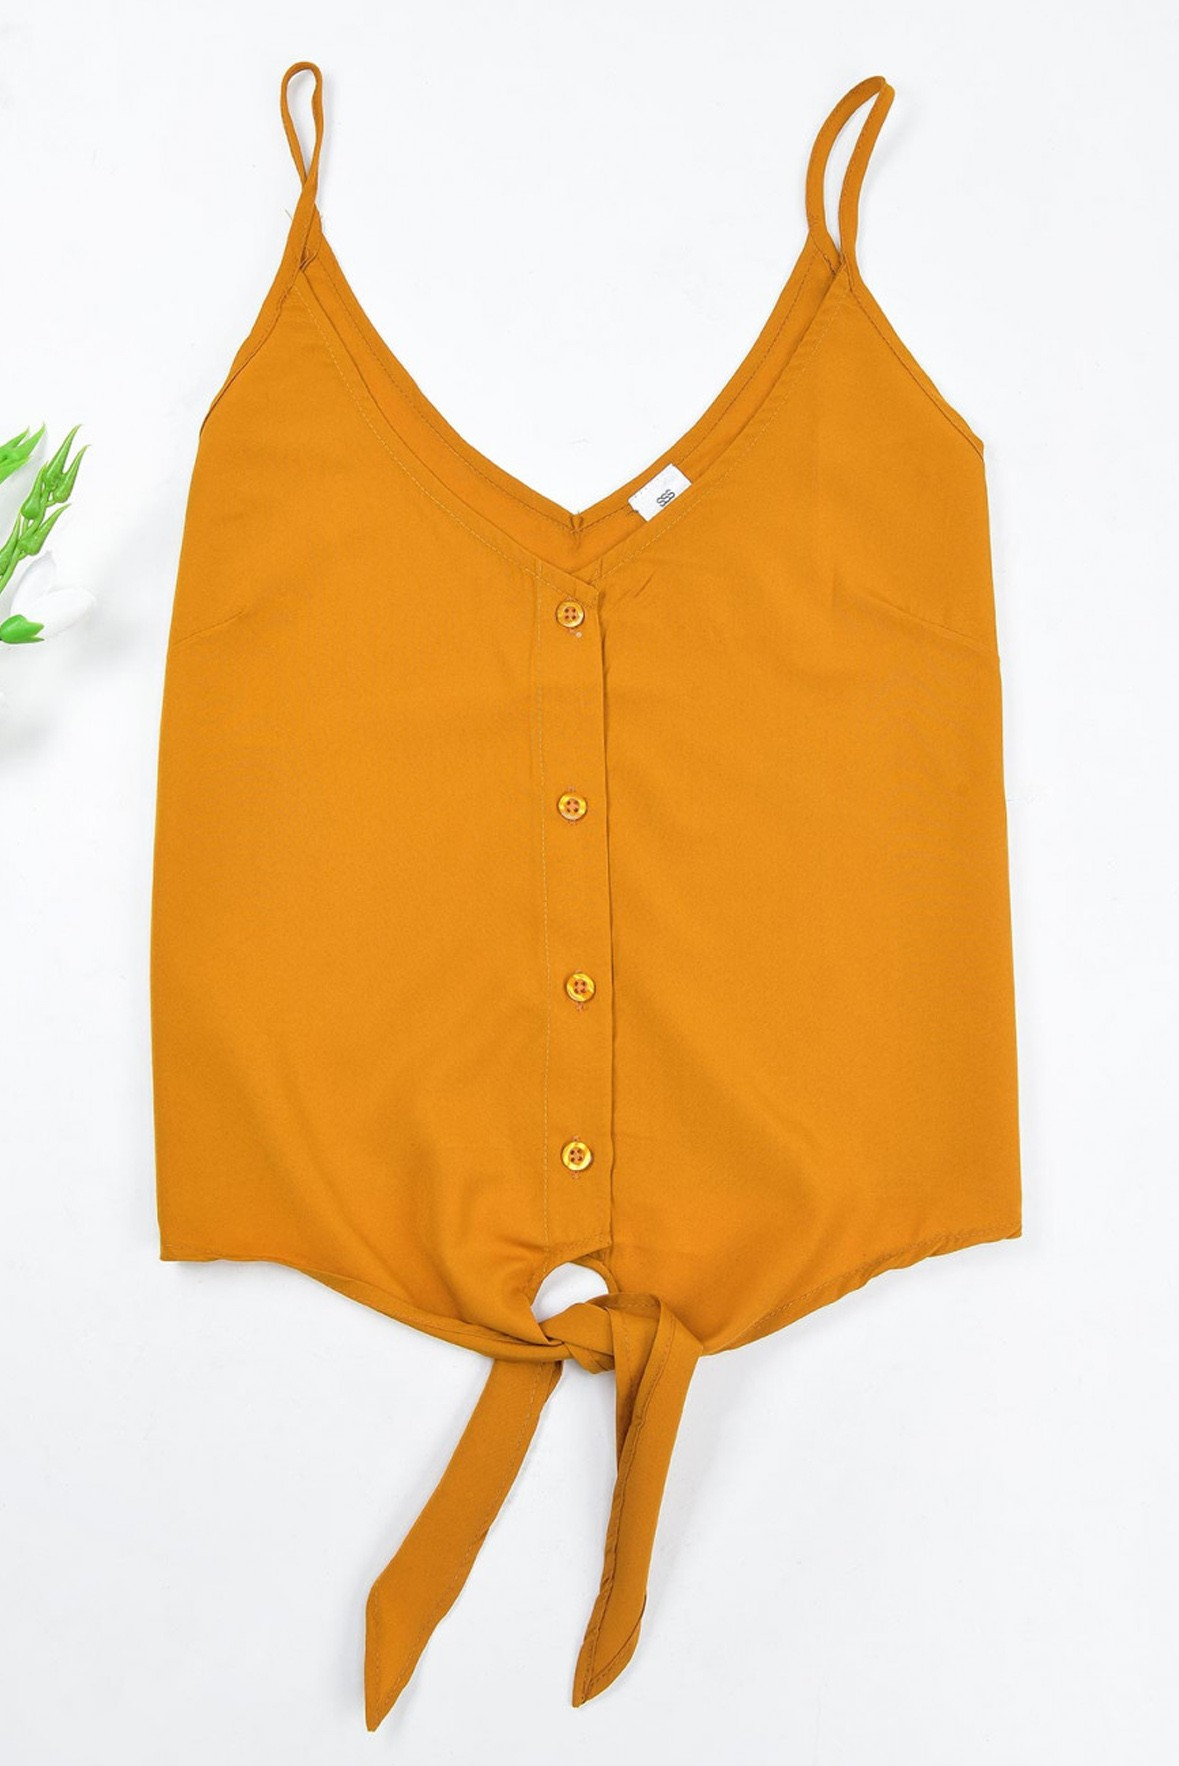 Knotted yellow Top